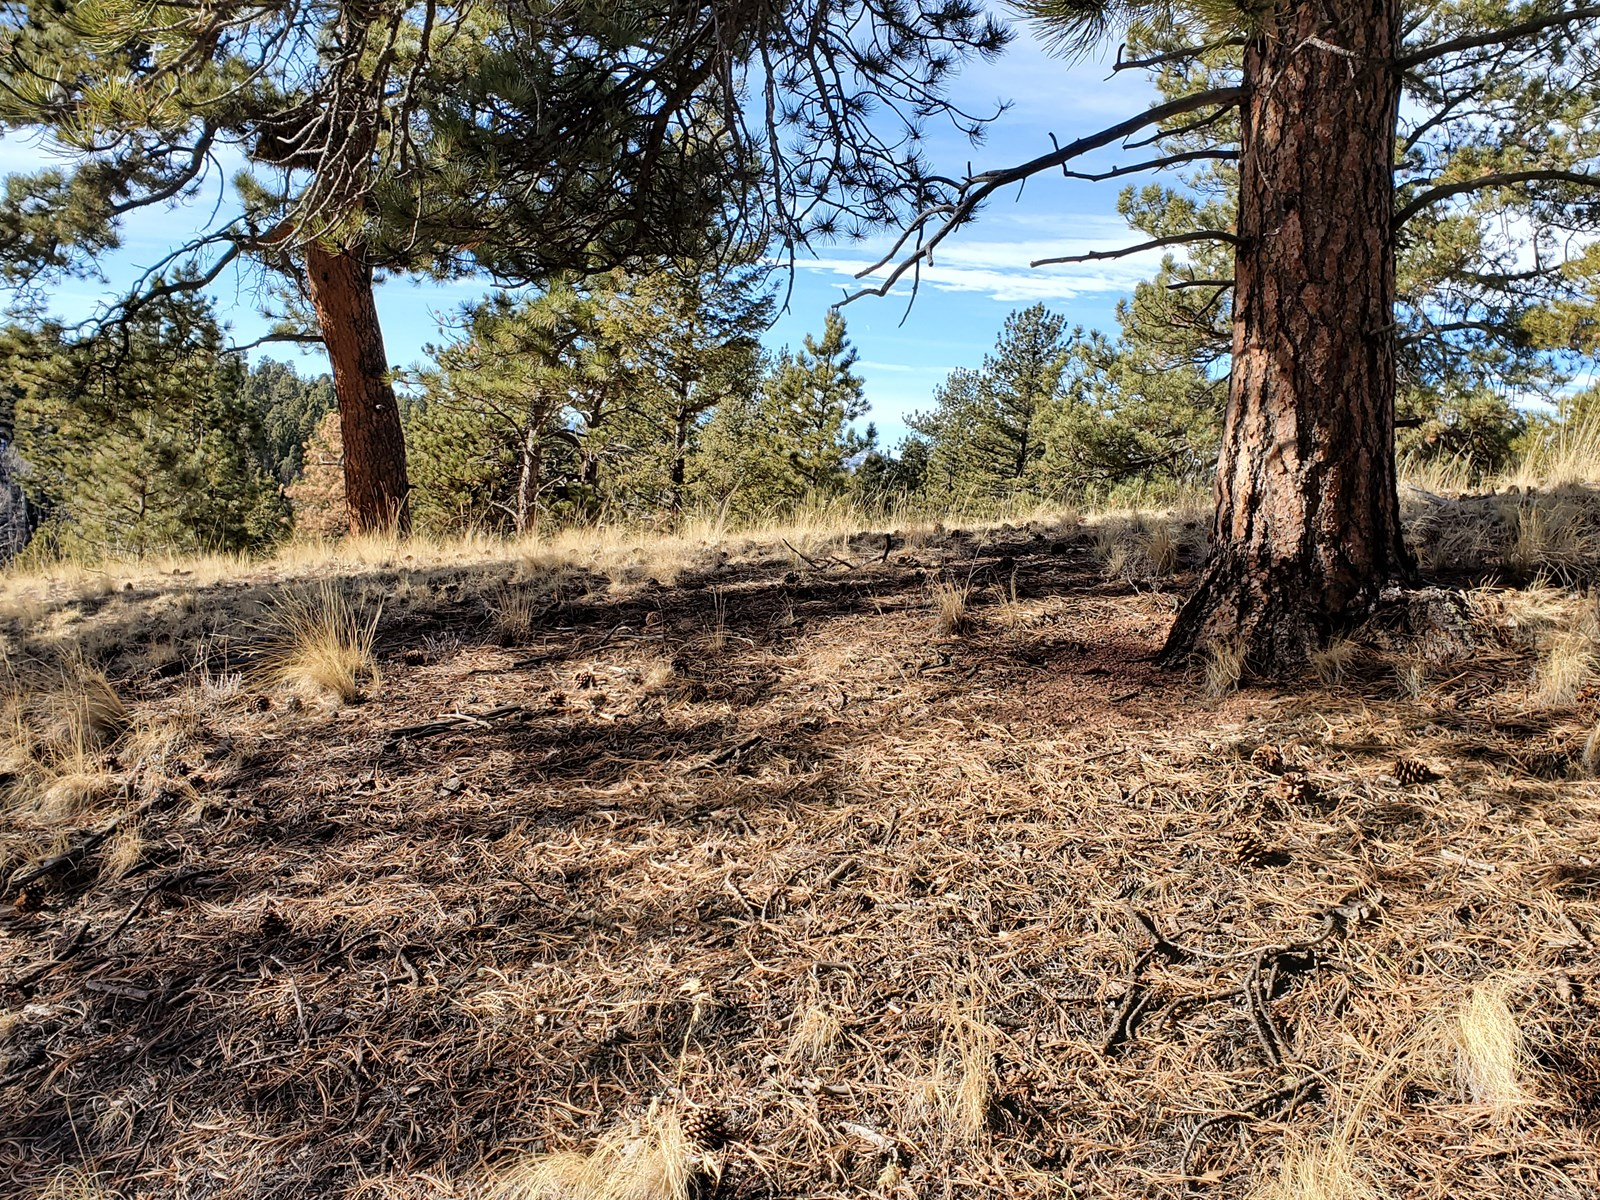 Vacant land Wooded Teller County CO National Forest Hiking F